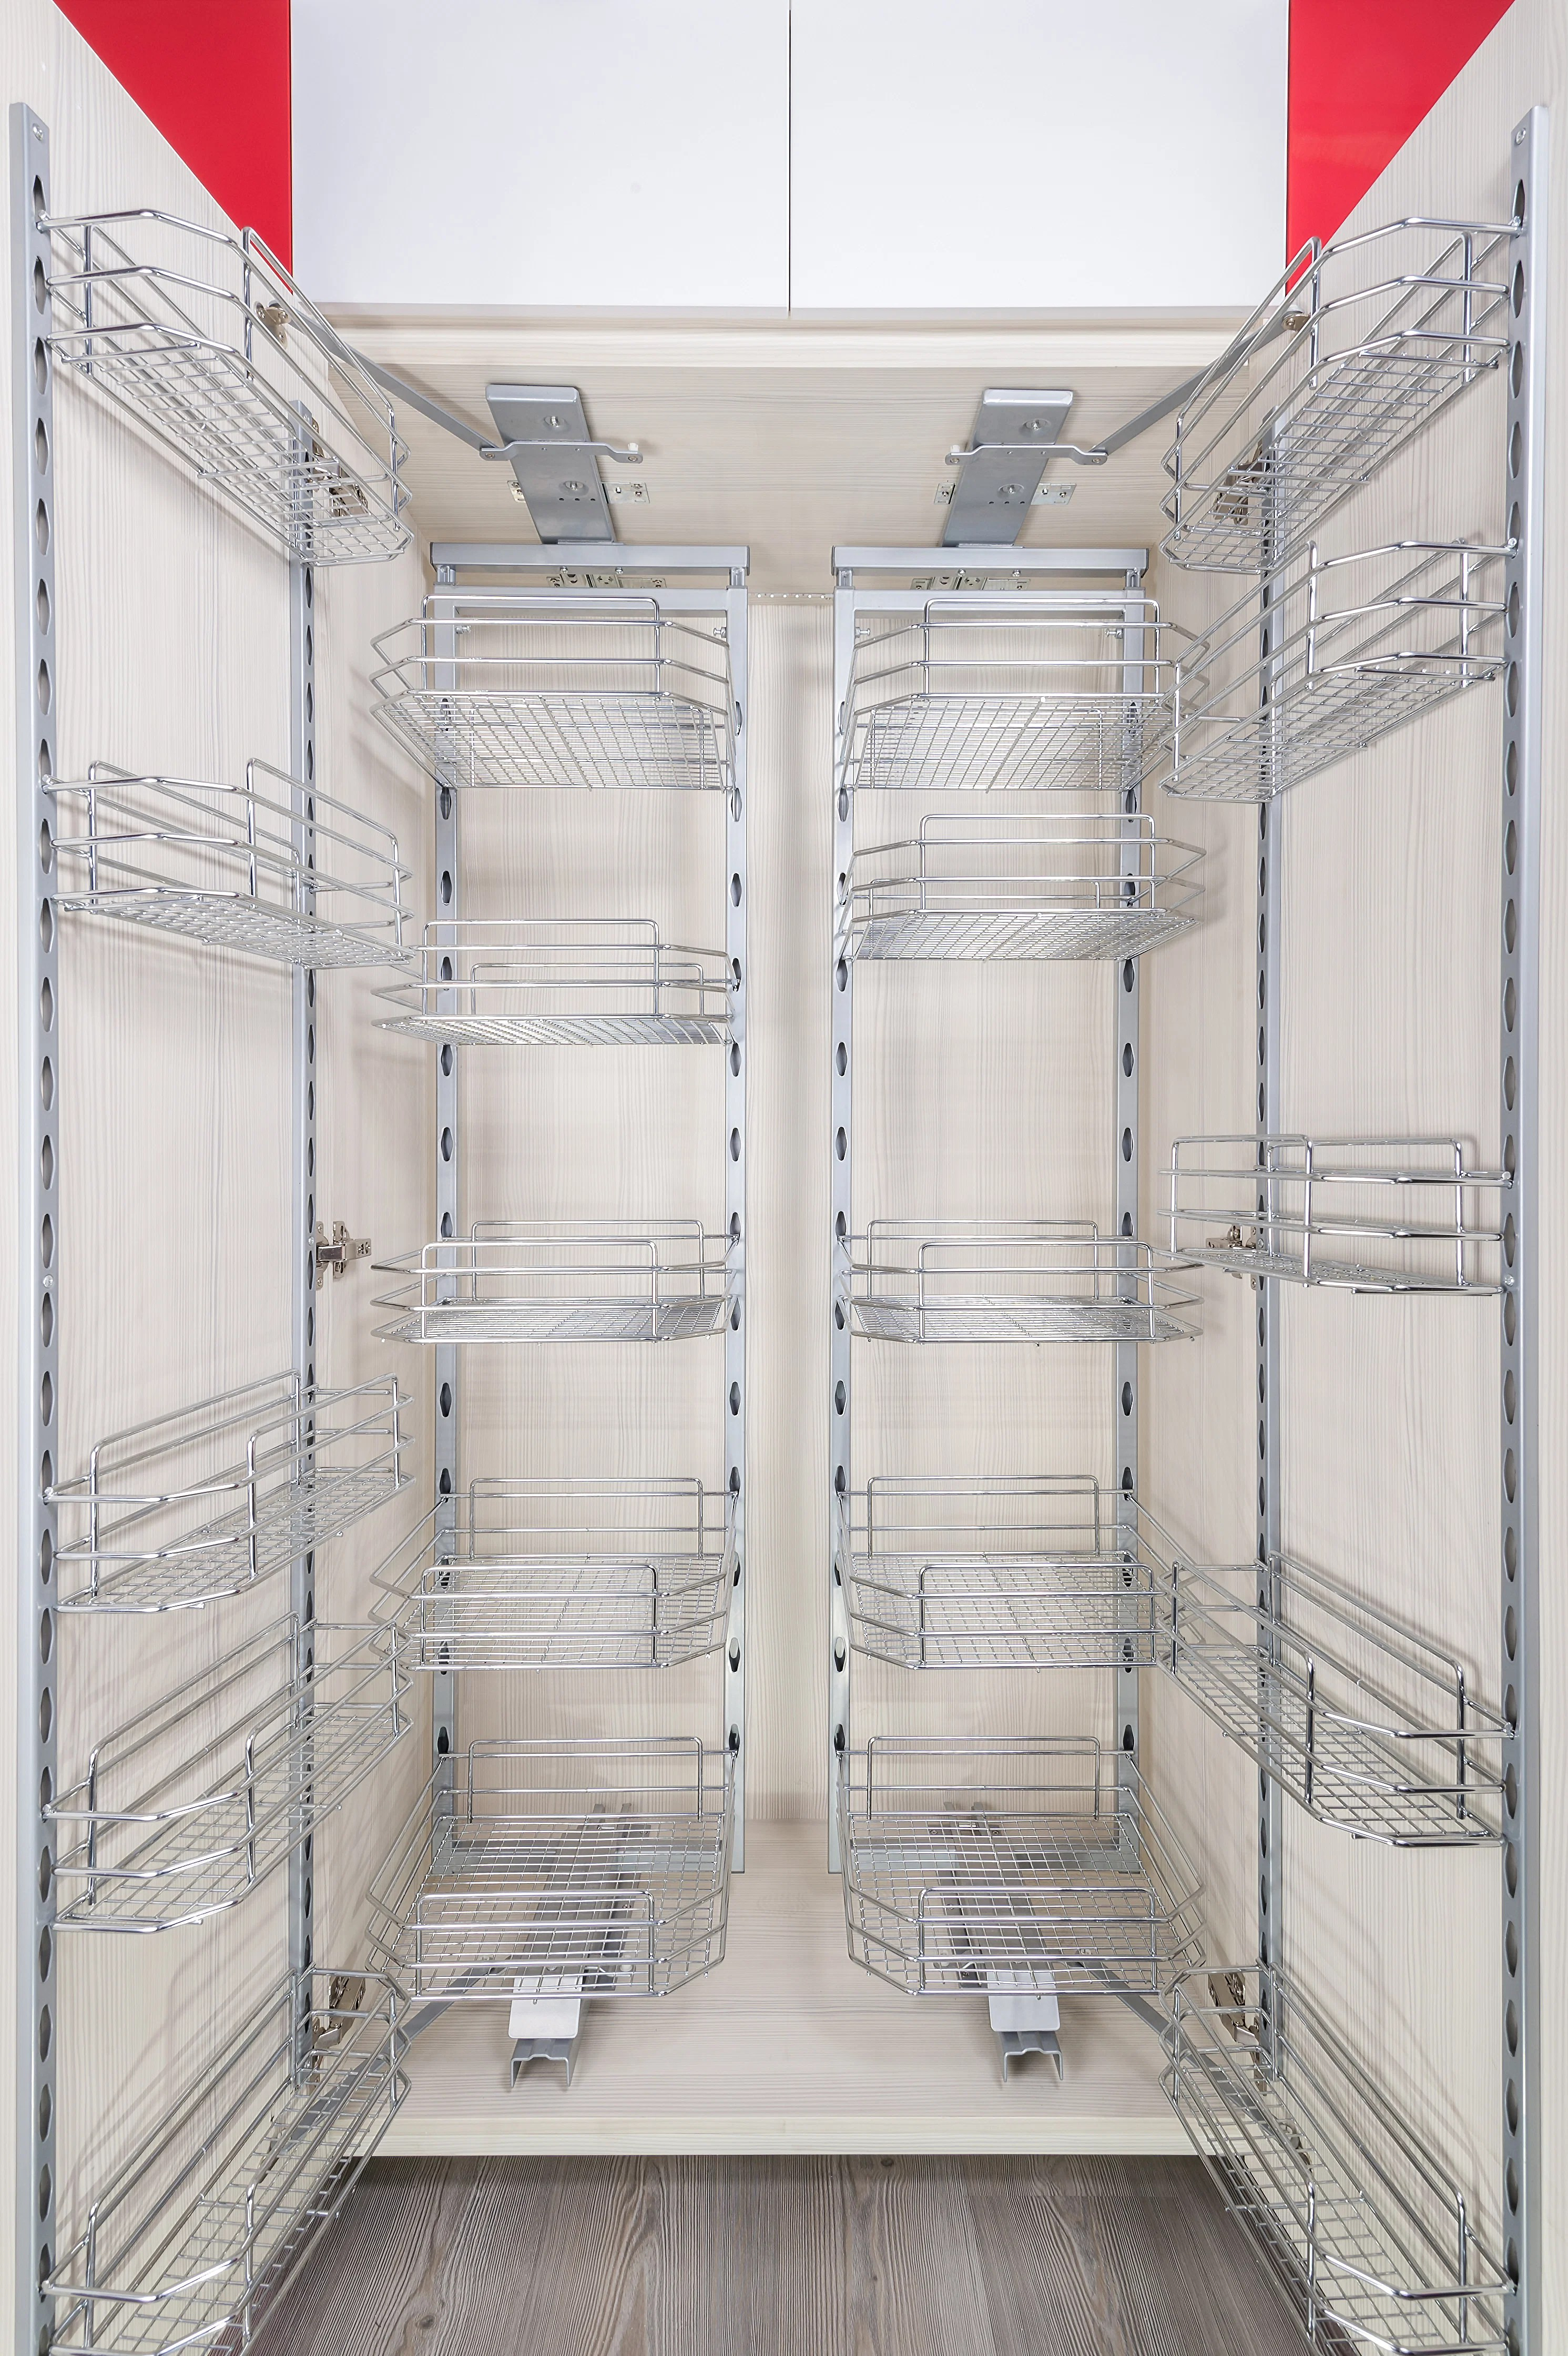 kitchen wire storage outdoor home depot 5 types of baskets to organise cabinets decor singapore solutions